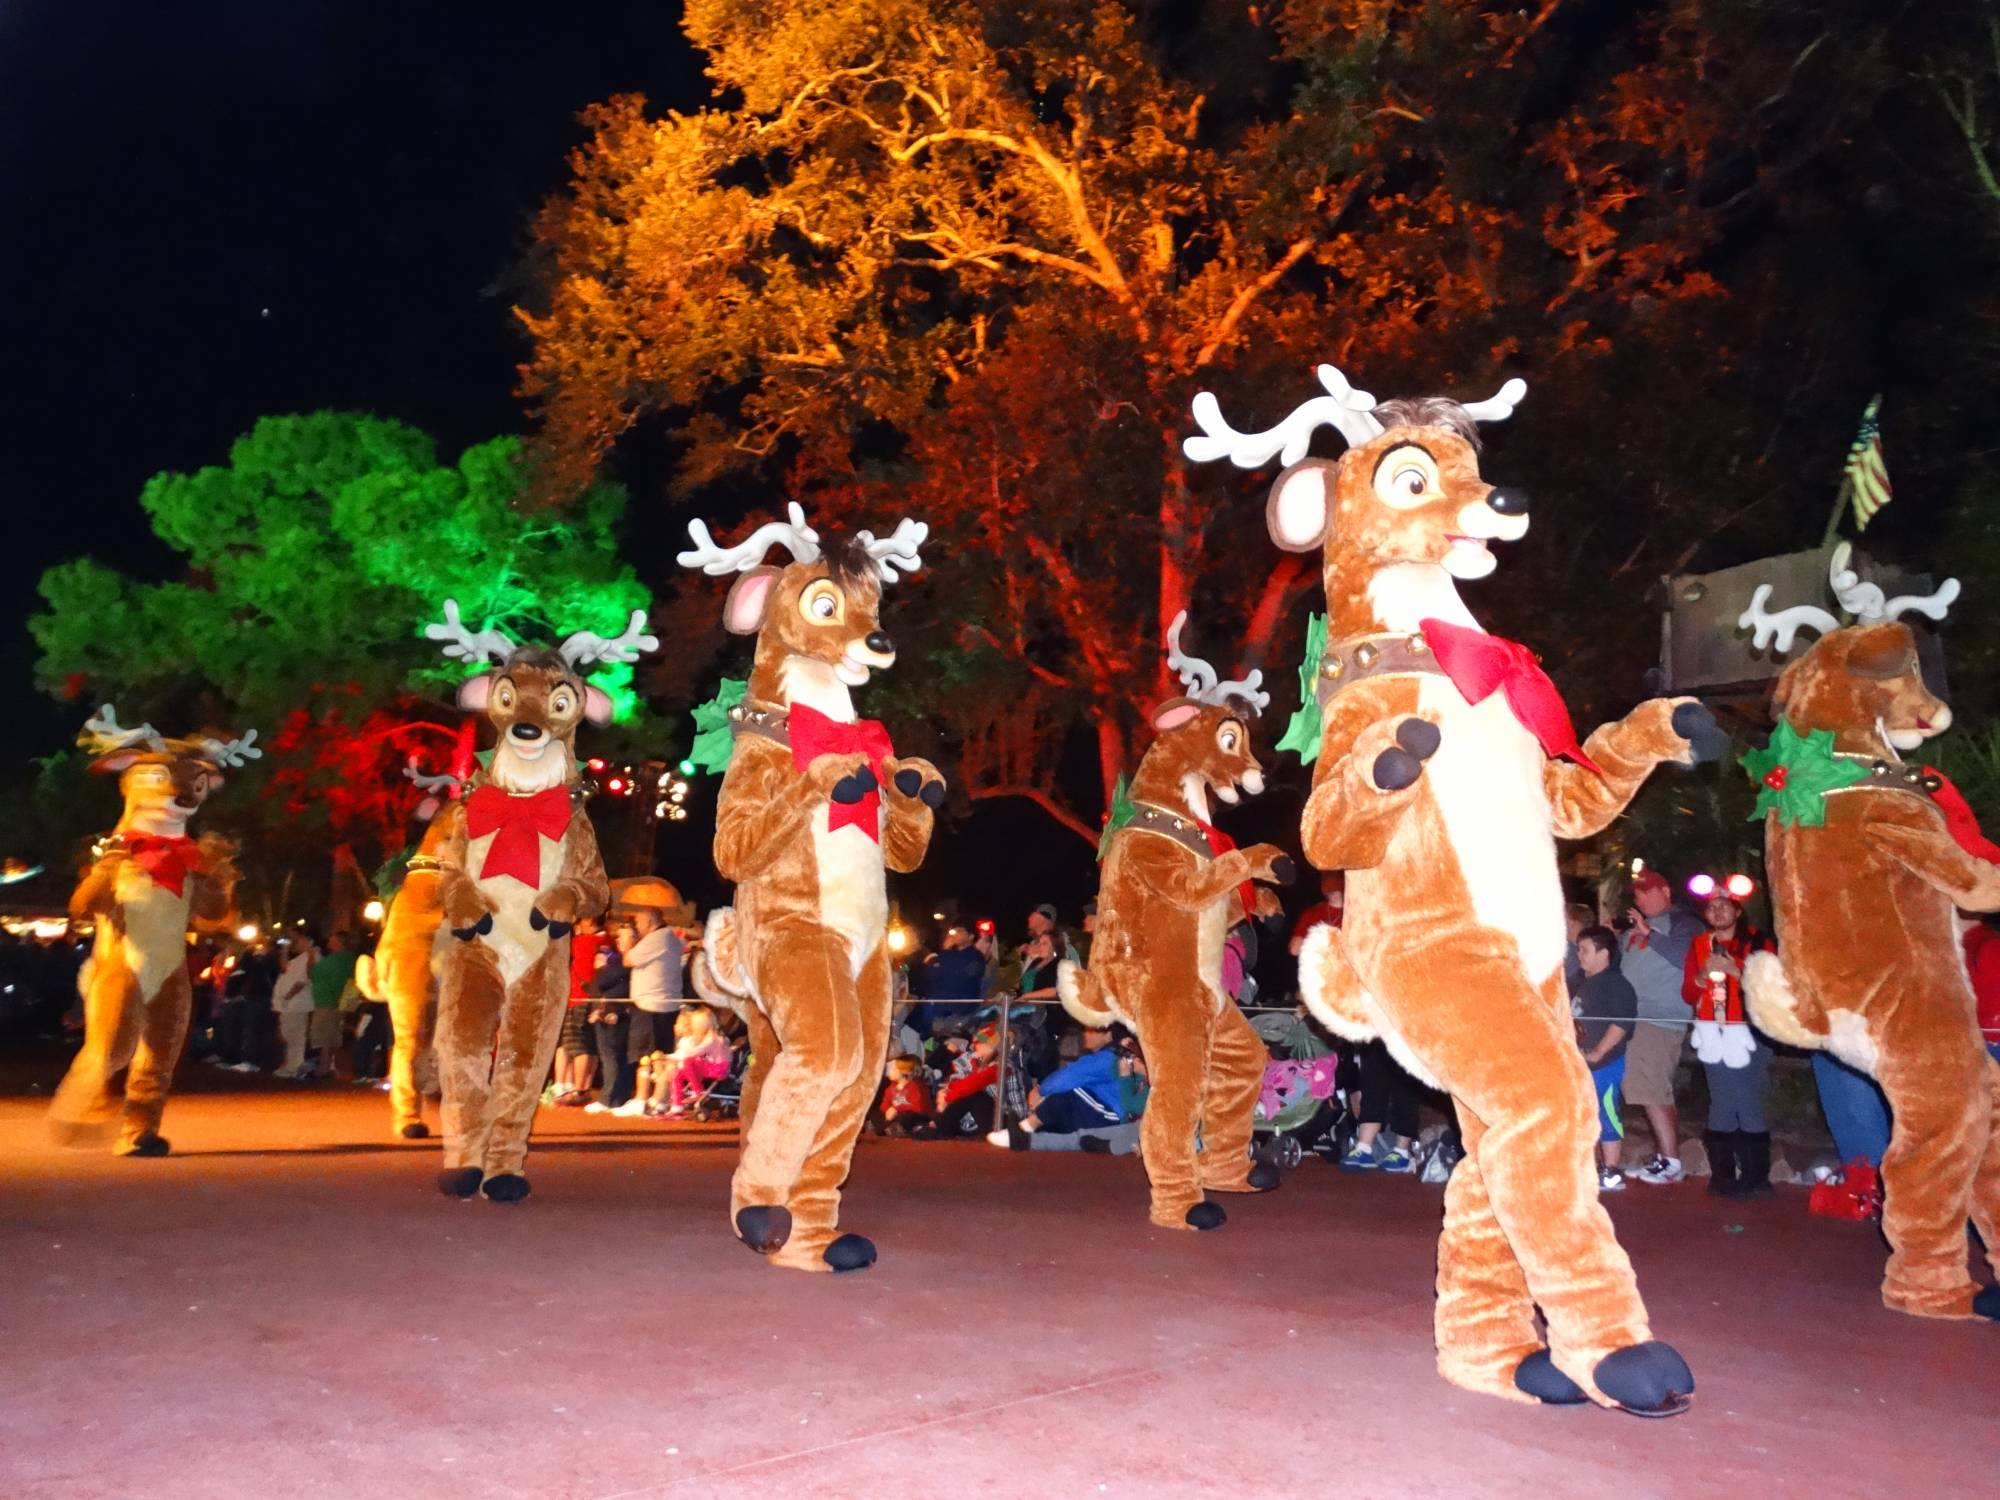 Celebrate the holidays with Mickey at Mickey's Very Merry Christmas Party |PassPorter.com